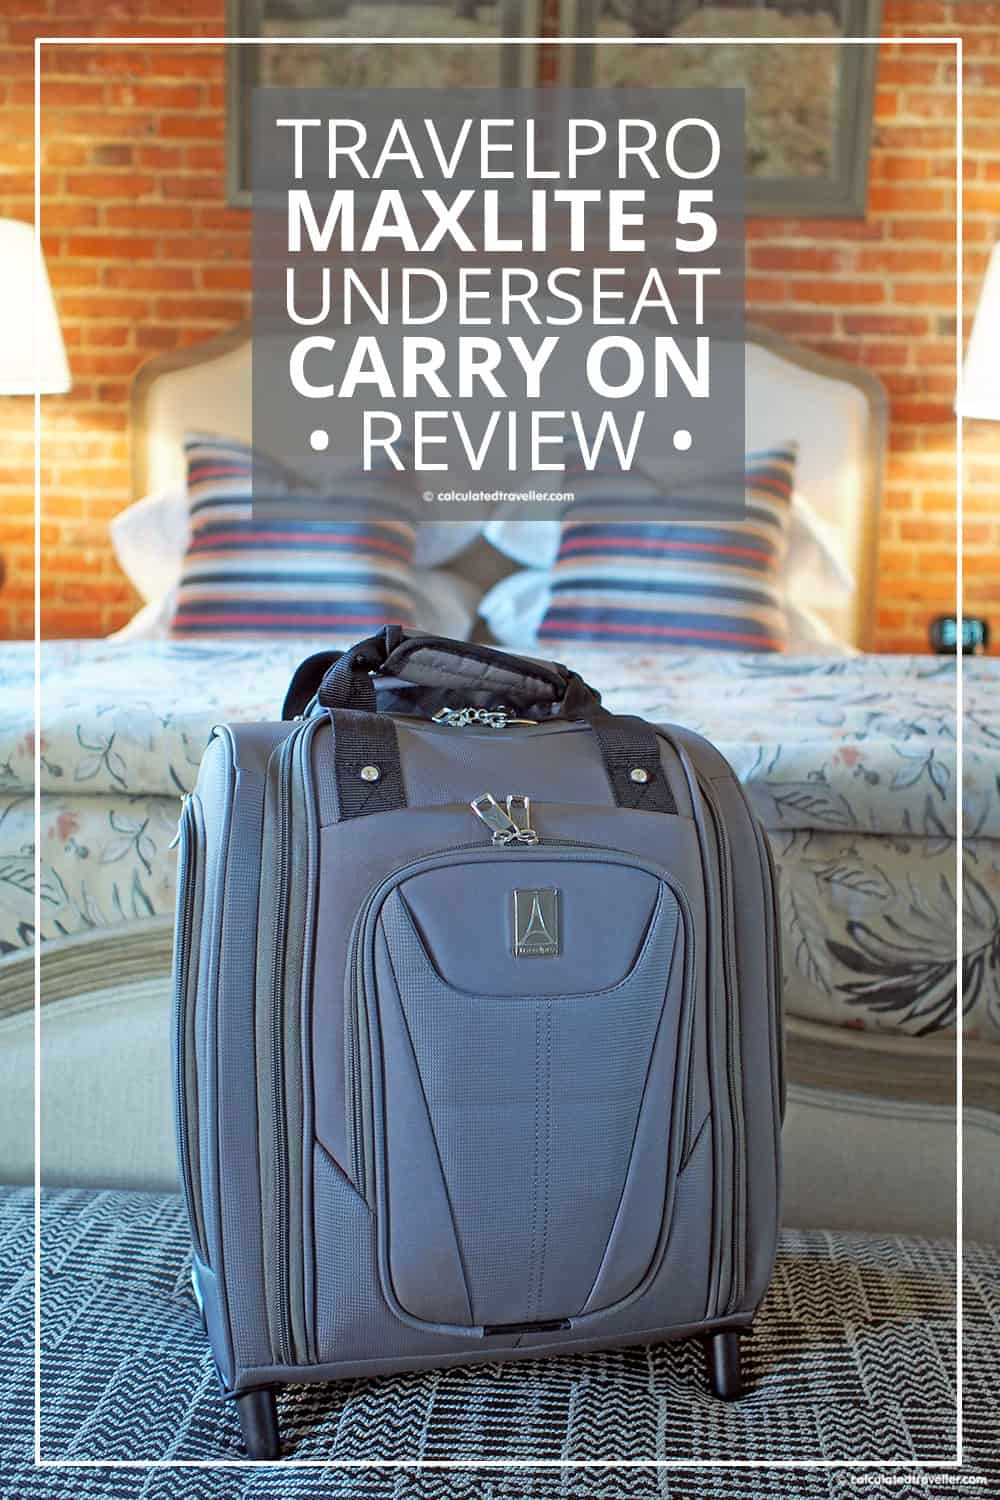 Review: TravelPro MaxLite 5 Rolling Under Seat Carry On Suitcase | #travel #packing #suitcase #luggage #bag